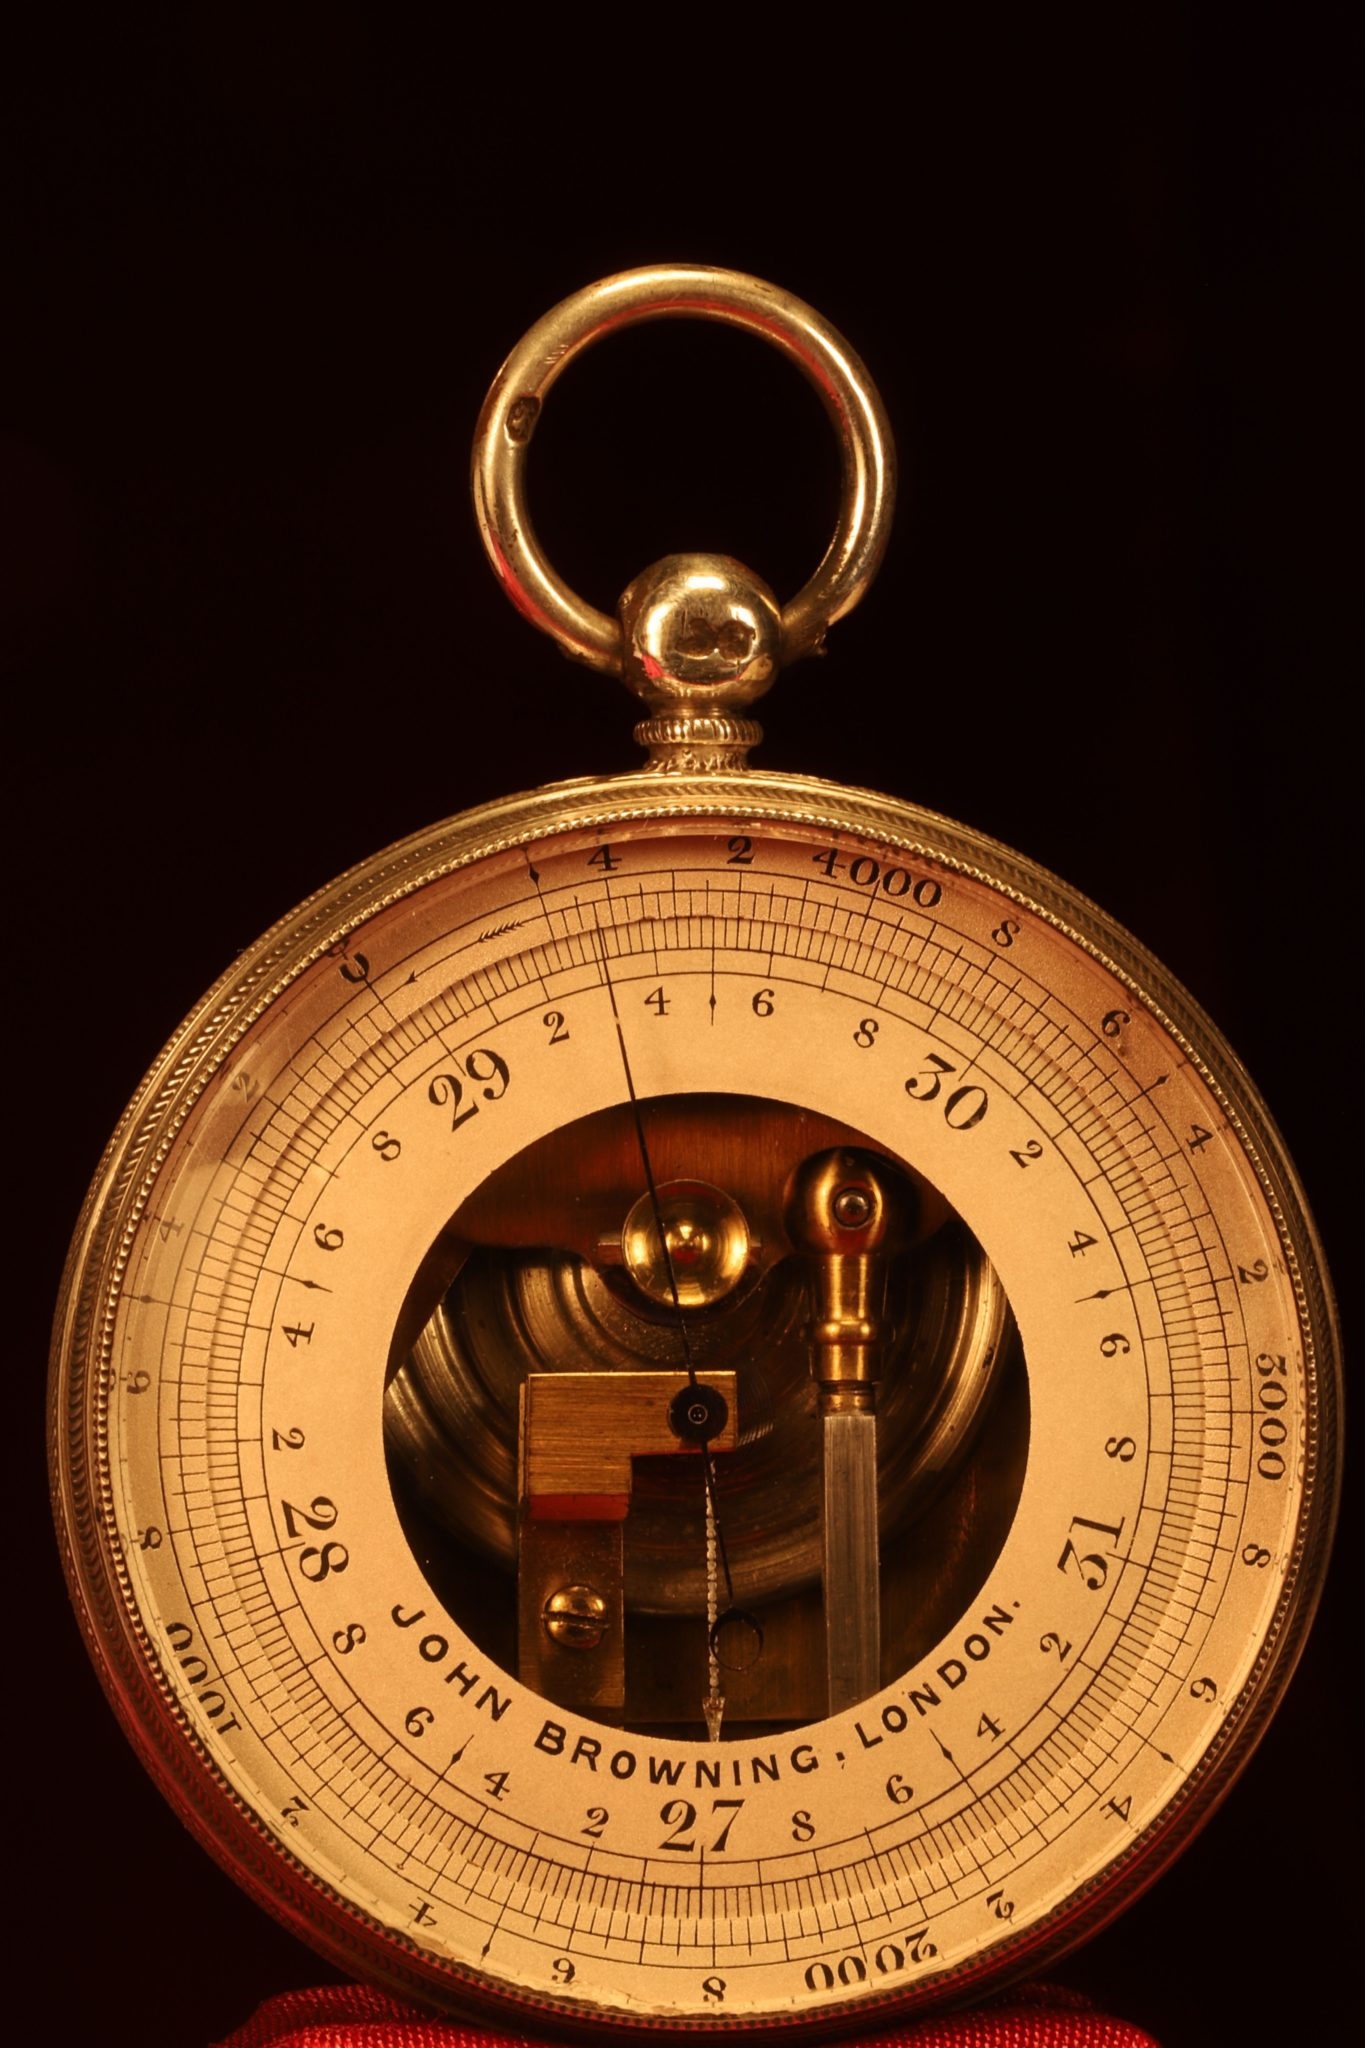 Image of John Browning Pocket Barometer c1863